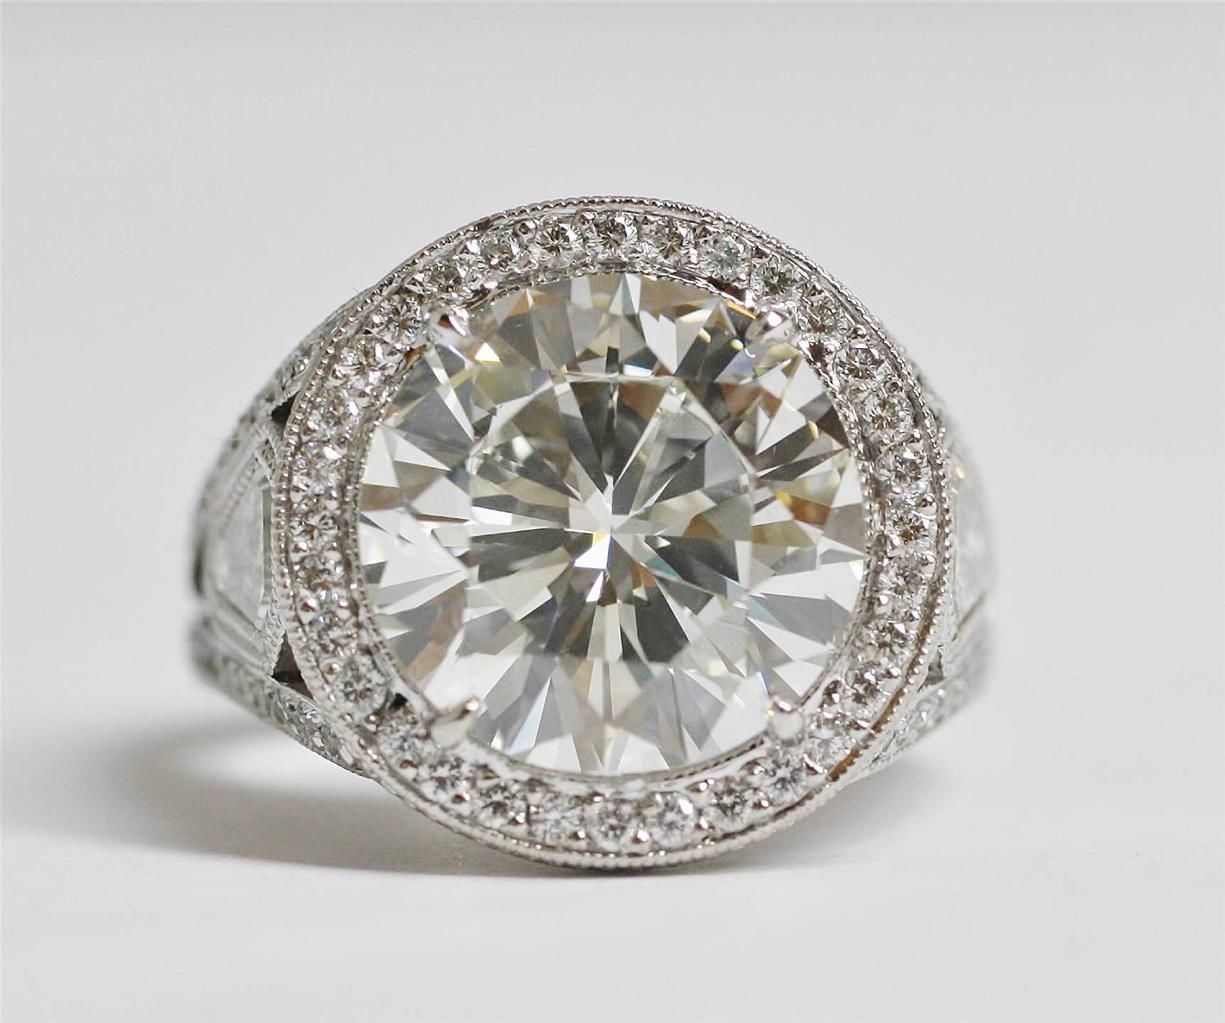 recent purchases charlotte diamond buyer - Where To Sell Wedding Ring